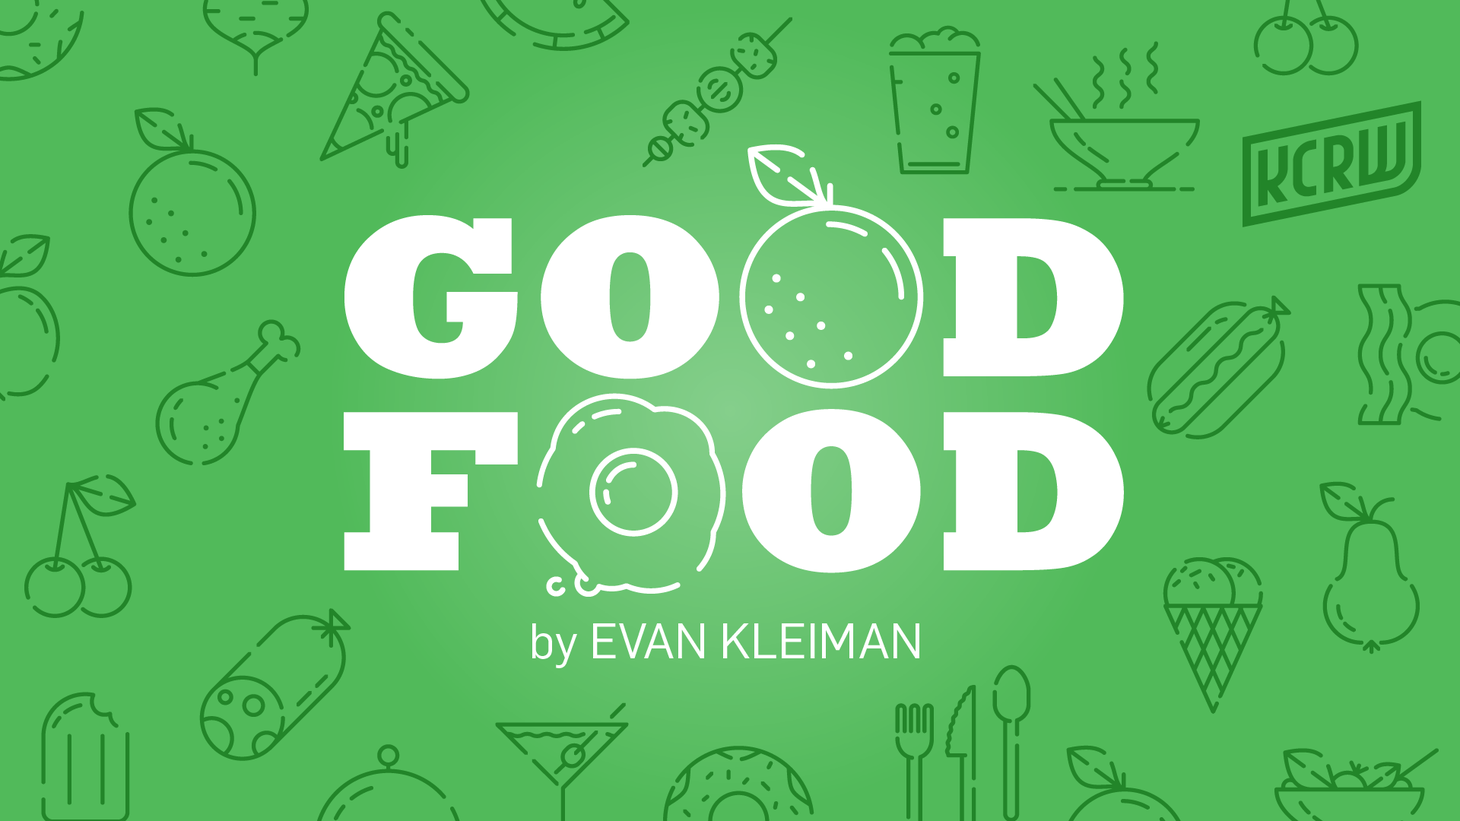 On today's Good Food, we provide some ideas for all the delicious corn that's on the market. We'll talk about creating Asian flavors in your own kitchen and get a little closer to home with some tastes from Mexico. With diabetes affecting more and more Americans, we'll learn a few ways to cook that help us face this silent killer.